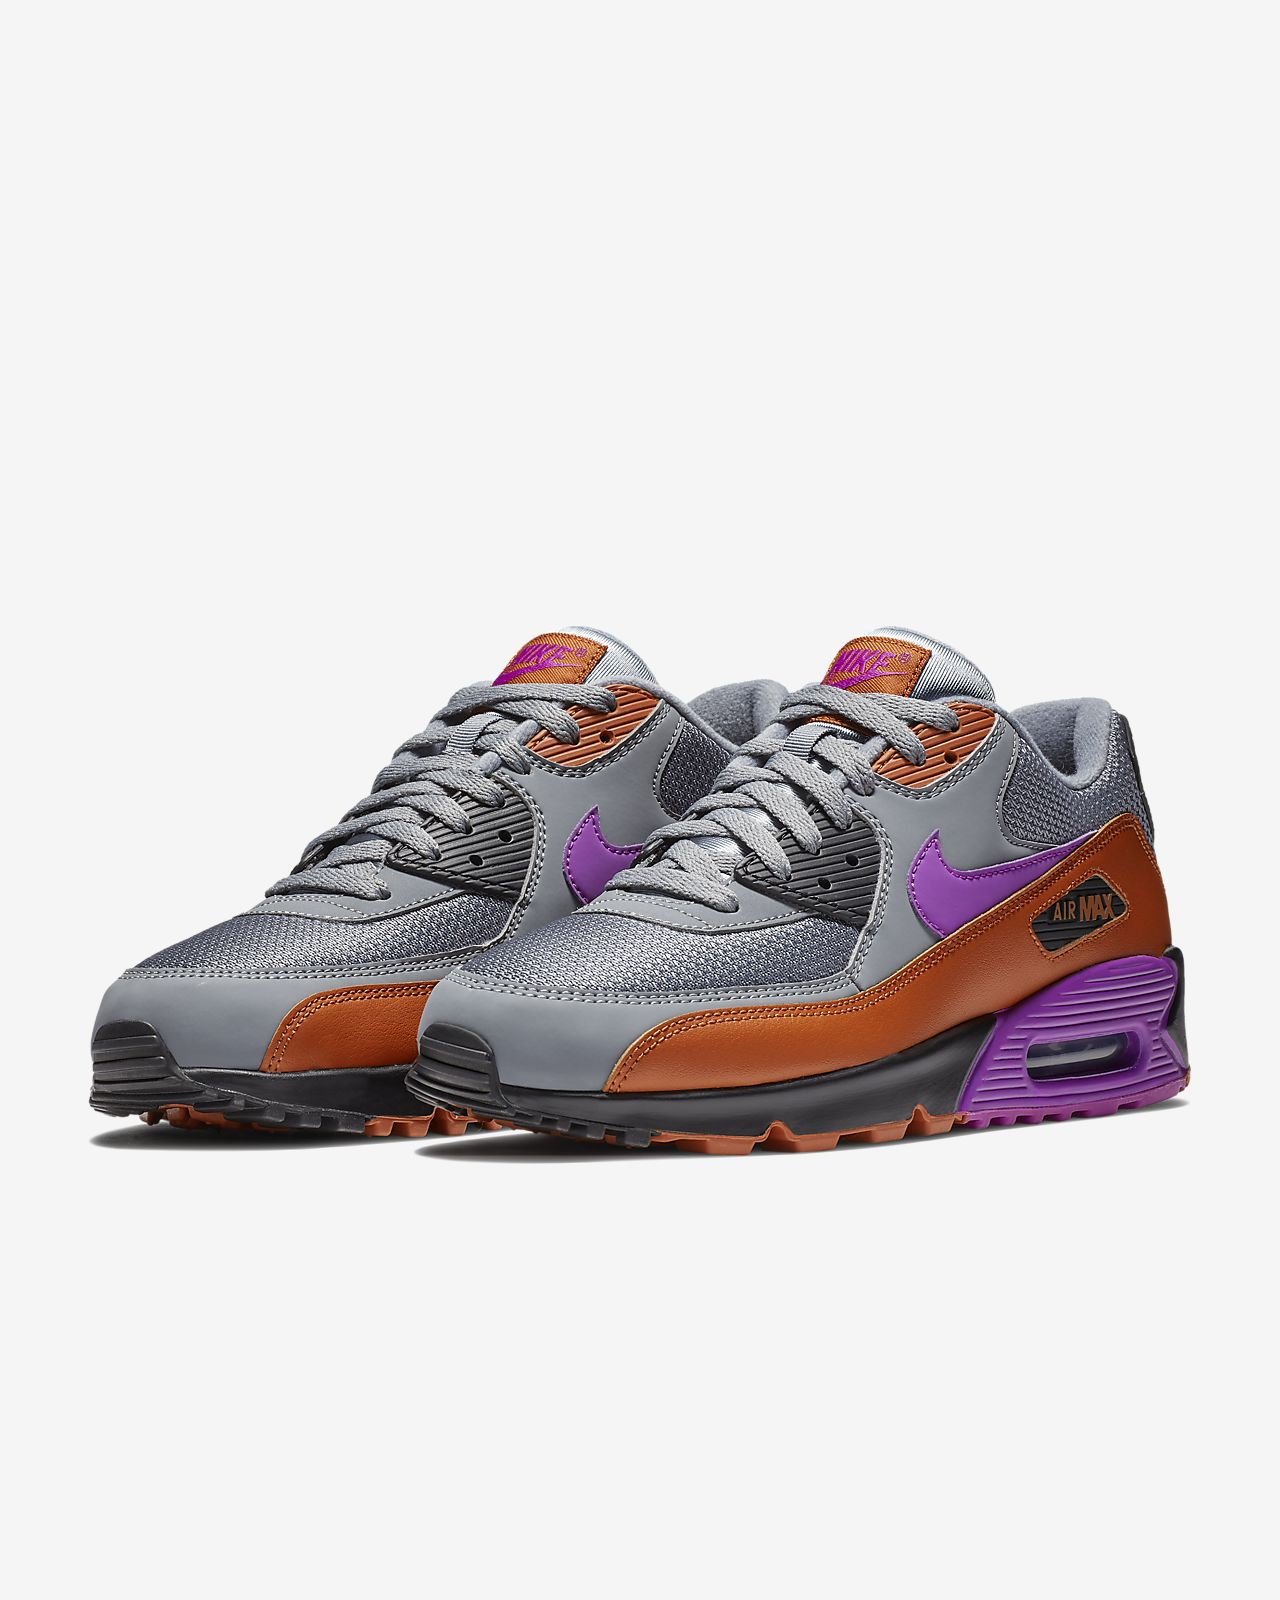 9486f3fe13f75 Nike Air Max 90 Essential Men s Shoe. Nike.com